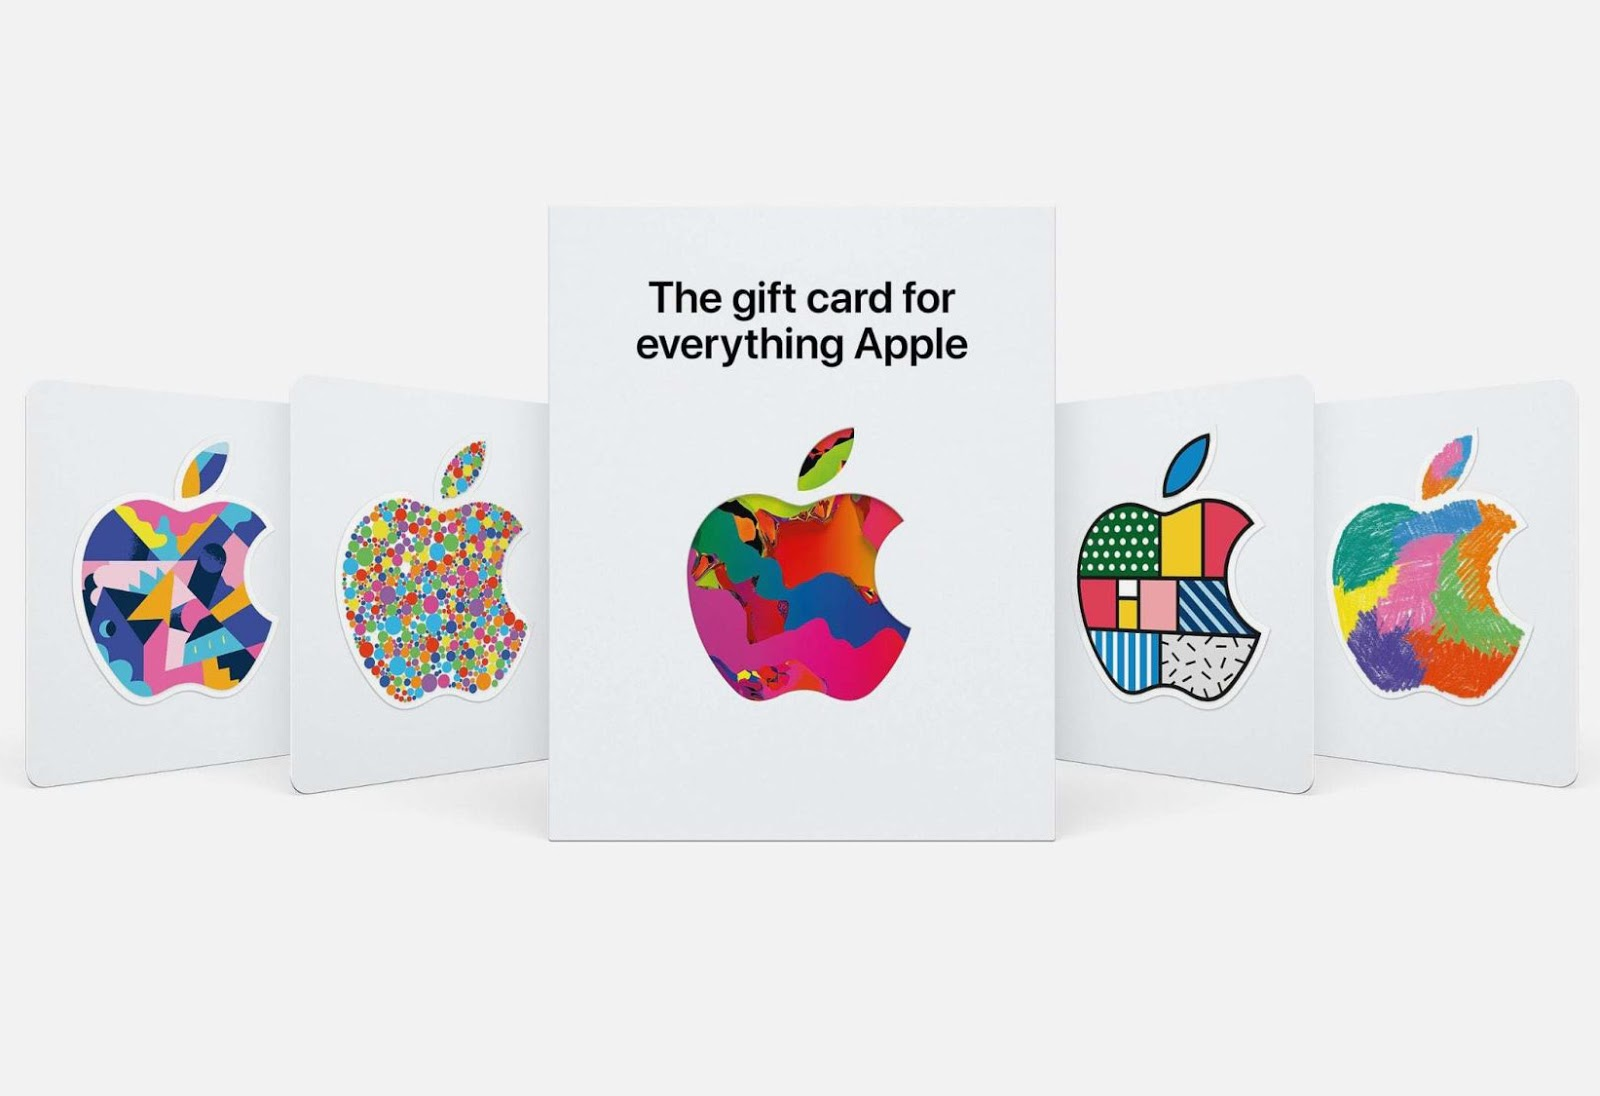 New Apple Gift Cards can be used in Apple Stores and the App Store